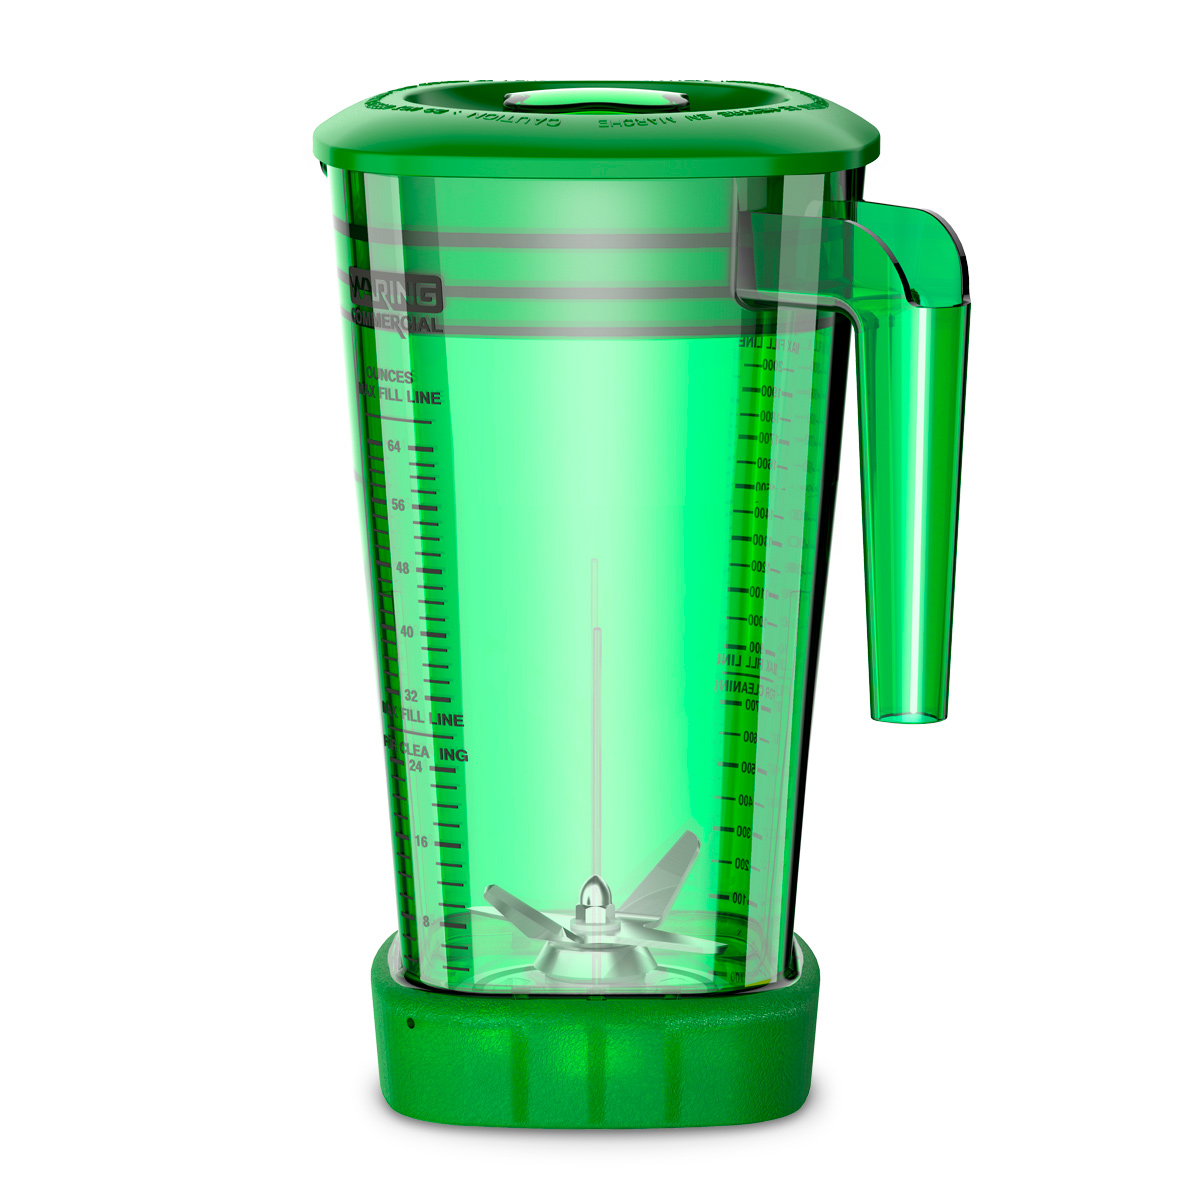 Waring CAC95-12 blender container